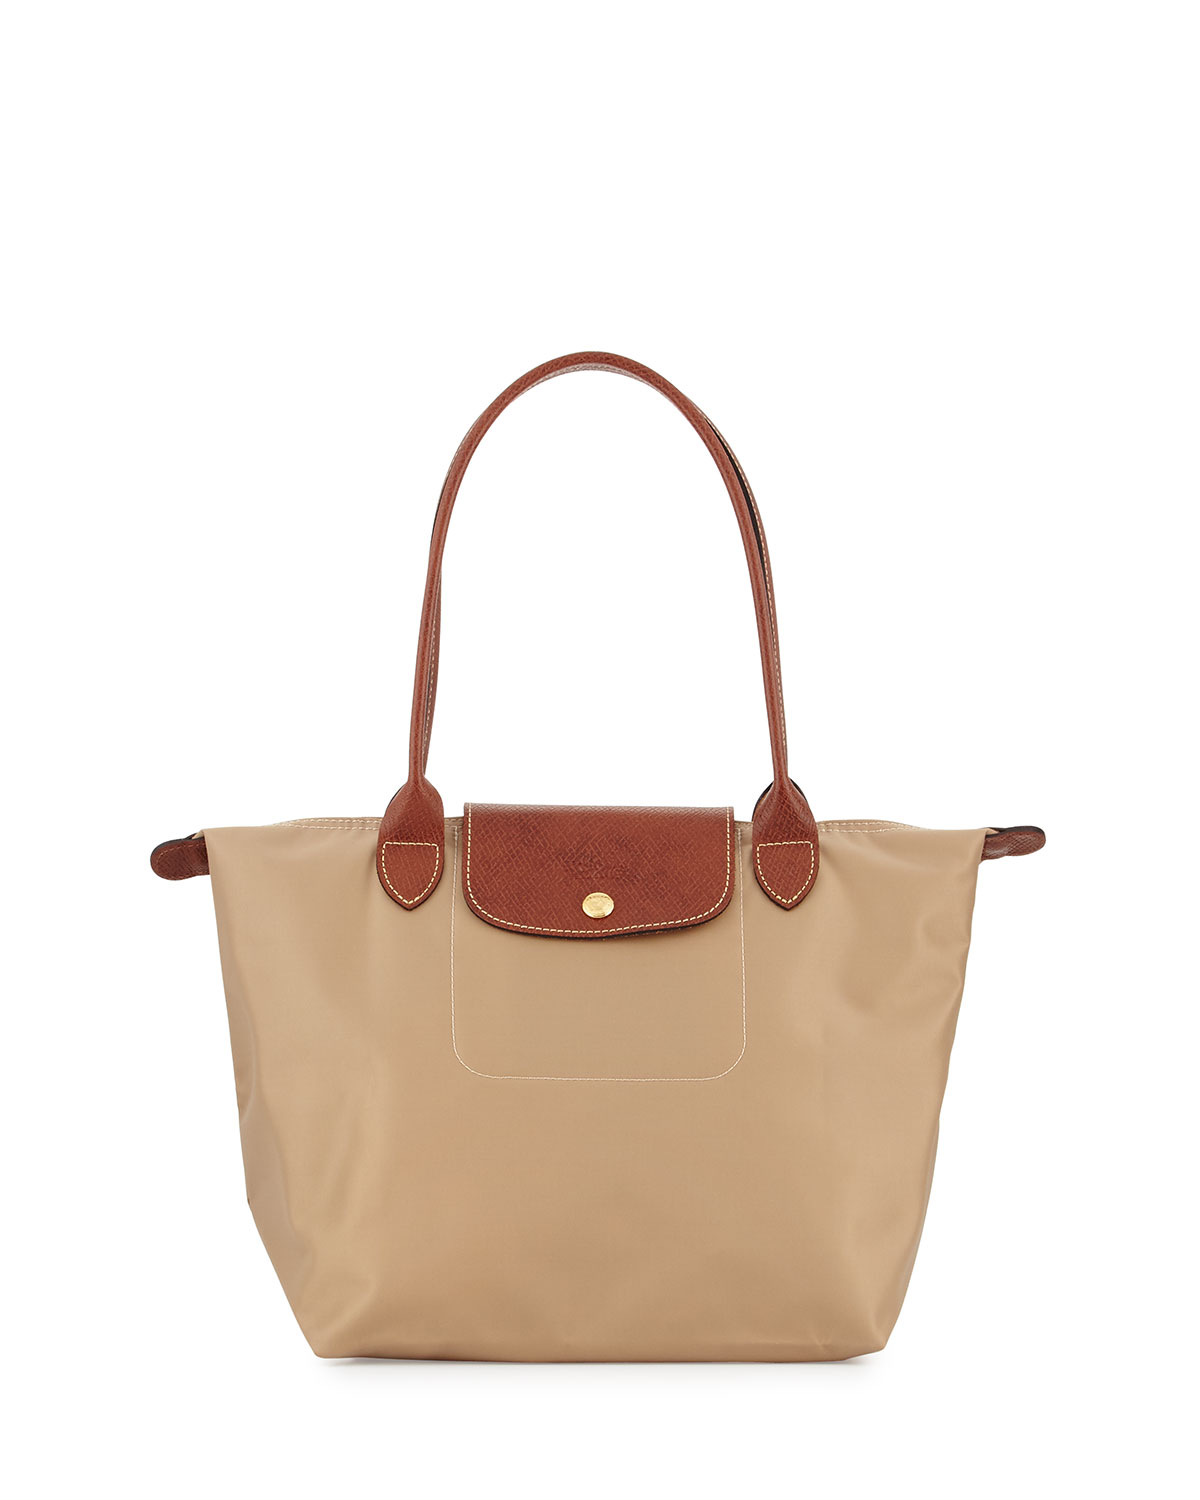 Longchamp Le Pliage Medium Shoulder Tote Bag, Beige   Neiman Marcus cbb9abae4e